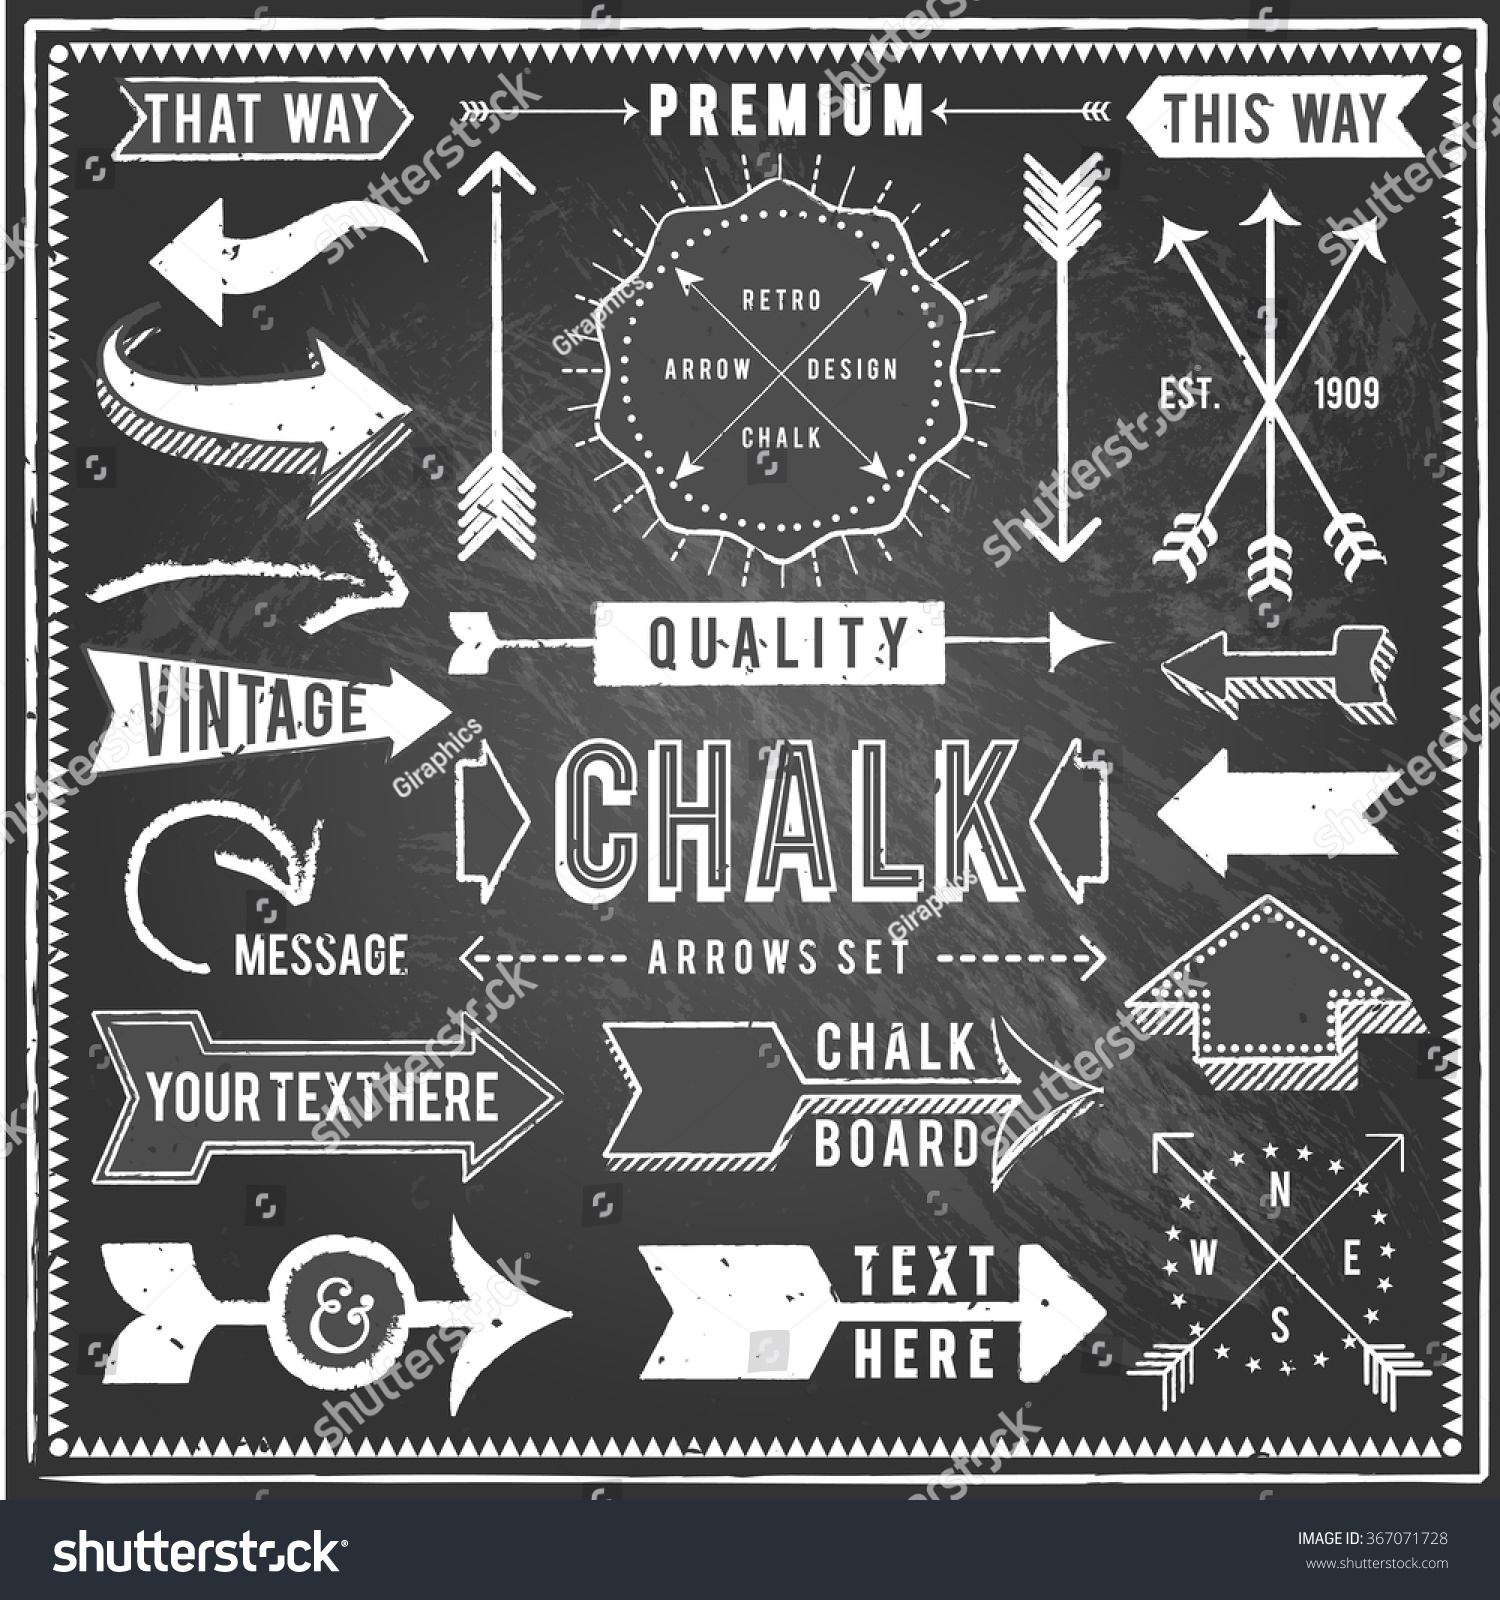 Vintage Chalkboard Arrows - Set of vintage arrows and banners. Each object is grouped and file is layered for easy editing. Textures can be removed. #367071728